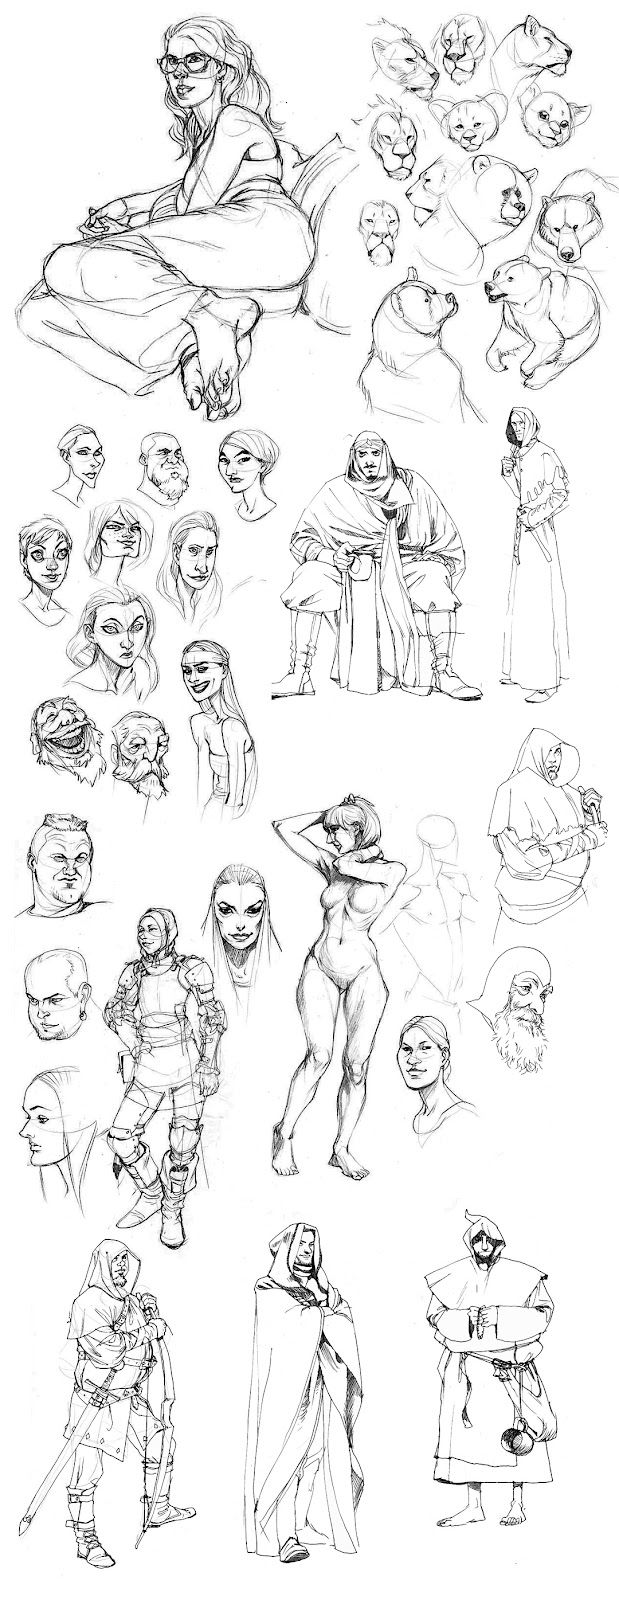 Pin by Bolshoy_Bu on For Sketches   Pinterest   Pose reference ...